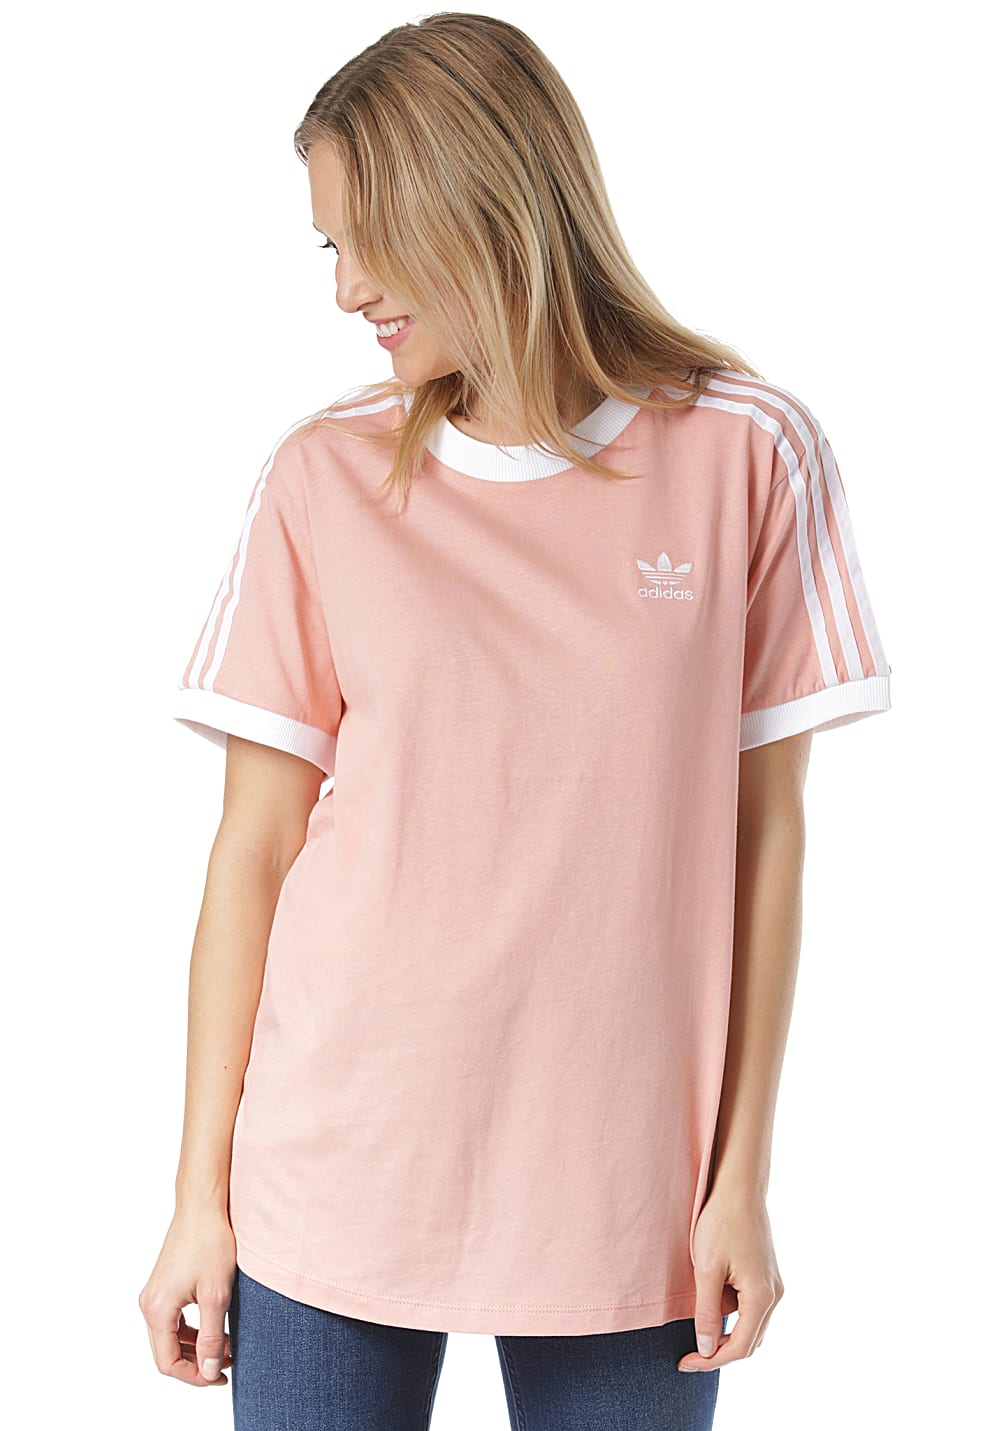 adidas Originals 3 Stripes - T-Shirt für Damen - Pink